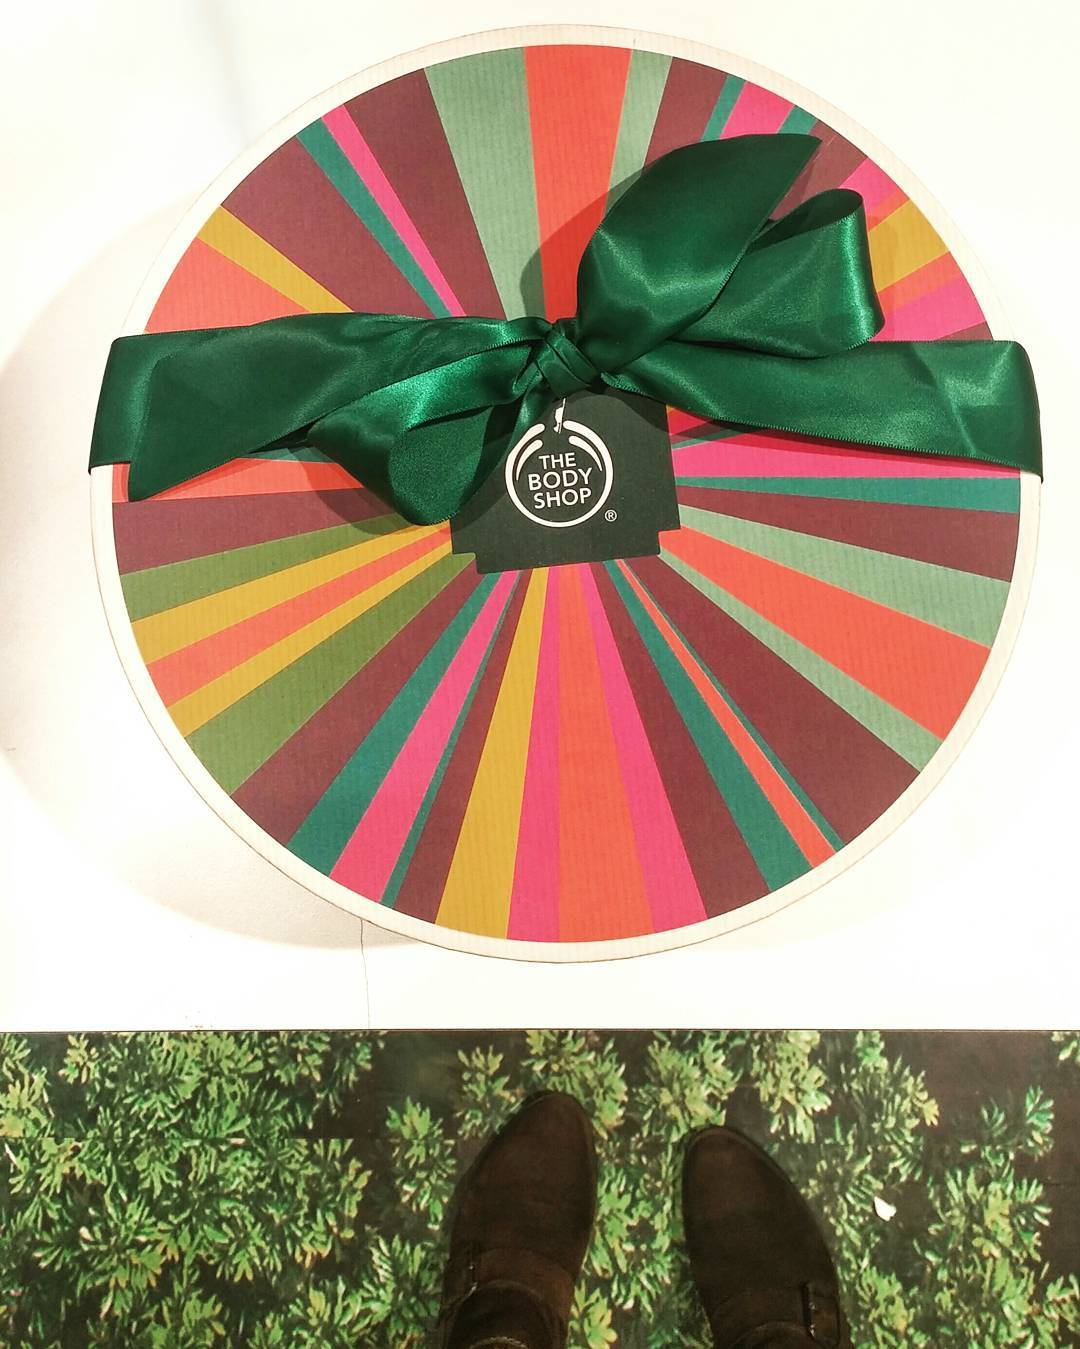 If you have yet to check out @thebodyshop for holiday gift giving, 🏃, don't 🚶 to check out the plethora or gift sets, limited editions and beautiful pkg'ing for everyone on your list! #JungleBells